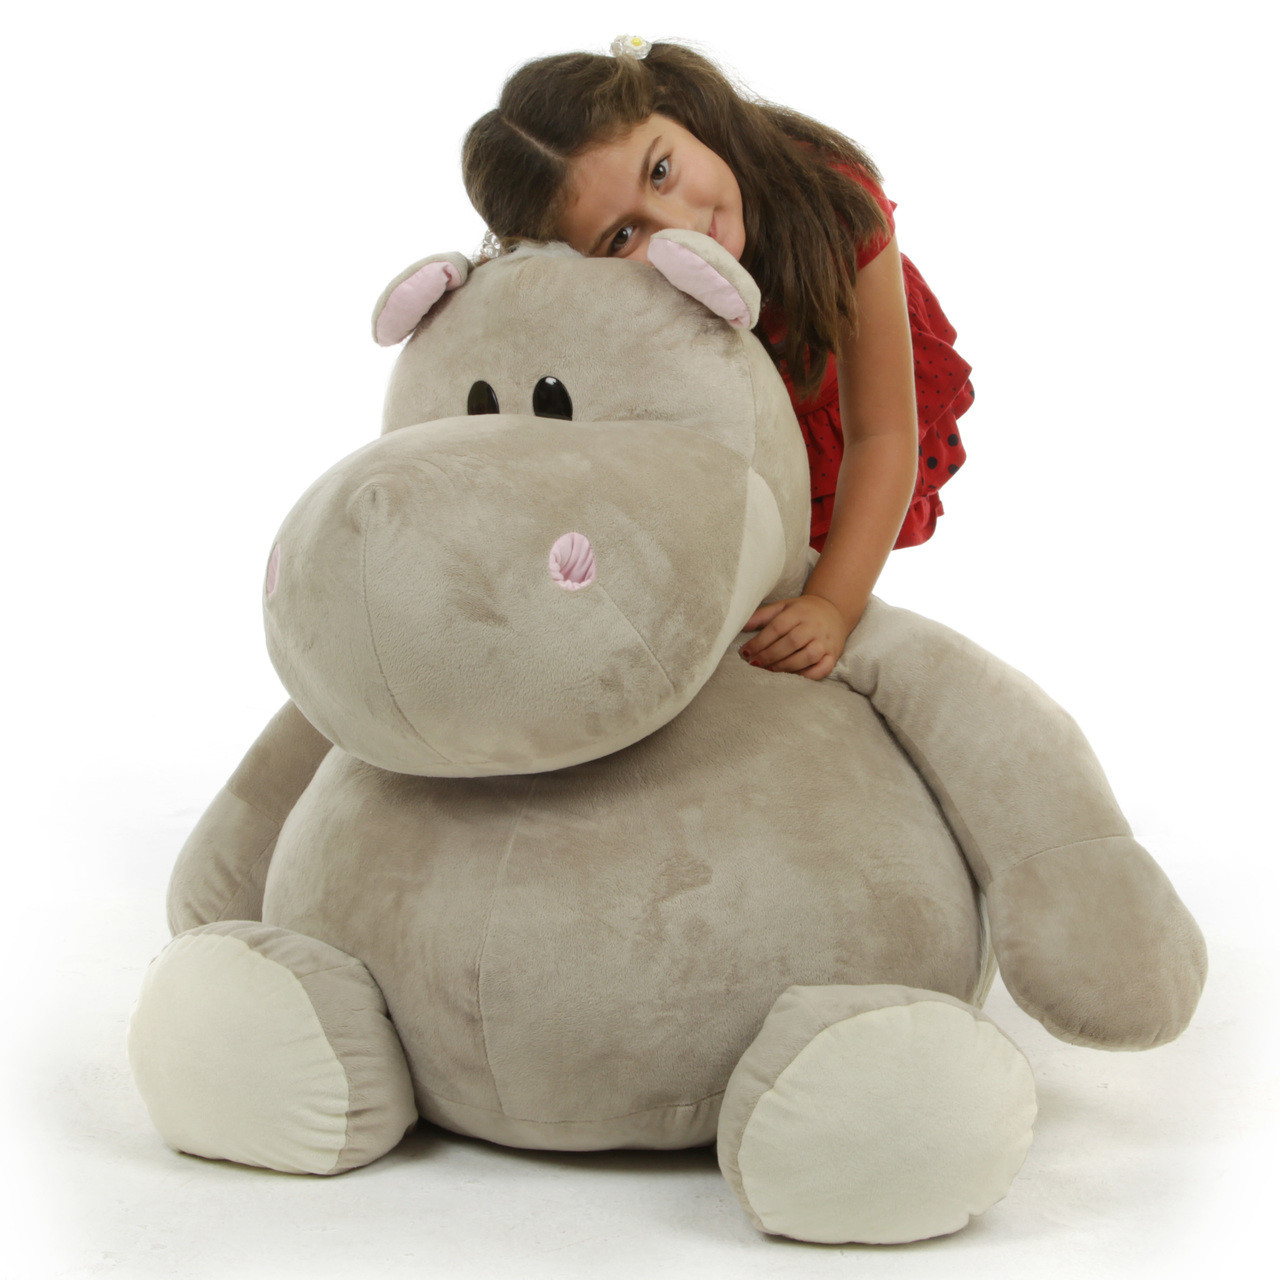 Giant Hippo Stuffed Animal by Giant Teddy